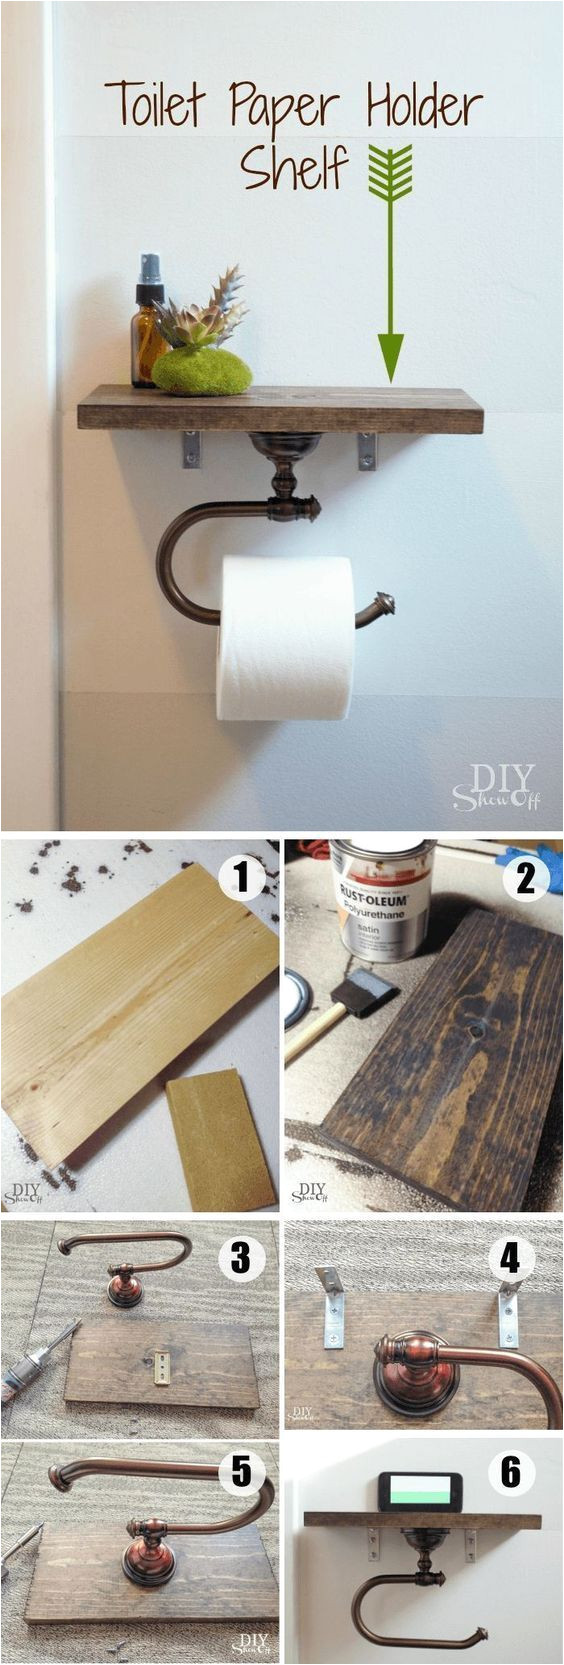 diy toilet paper holder with shelf use this clever and functional toilet paper holder to keep small handy bathroom accessories or to create attractive